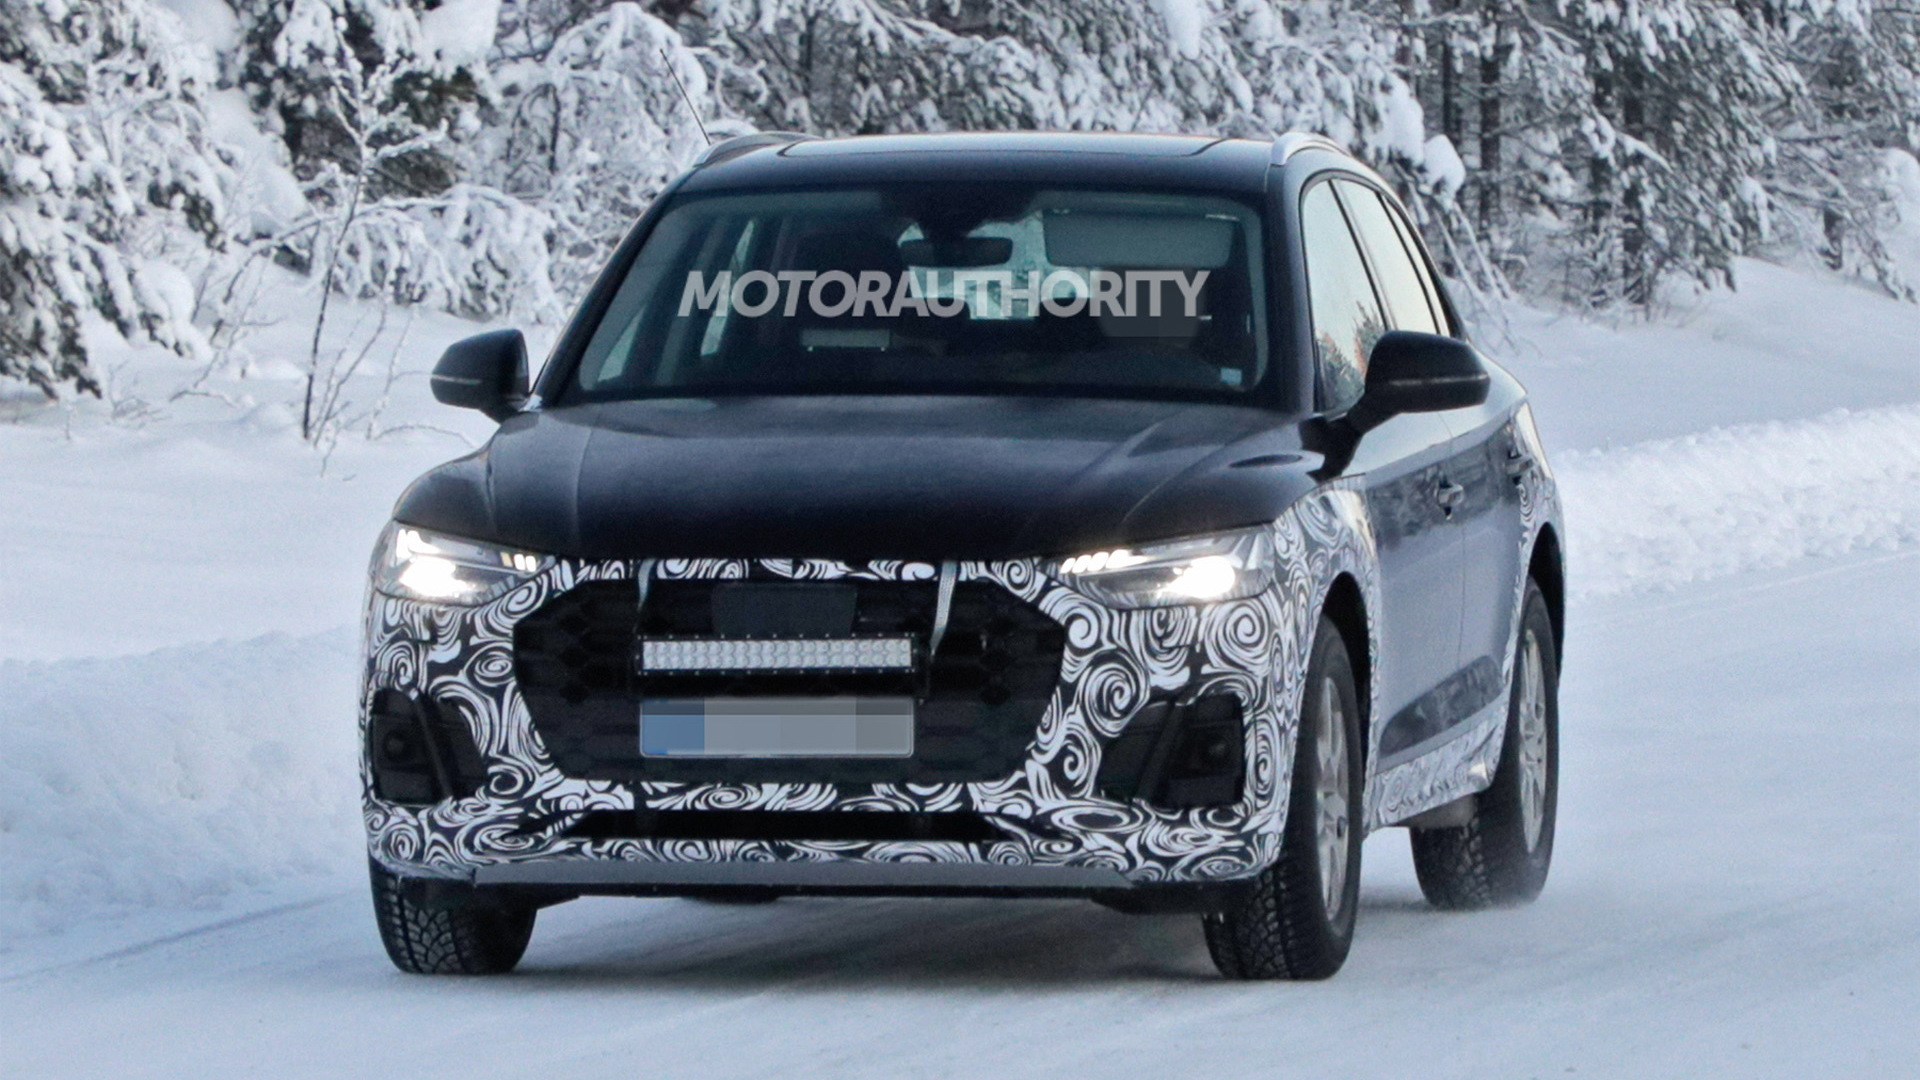 2021 Audi Q5 facelift spy shots - Photo credit: S. Baldauf/SB-Medien